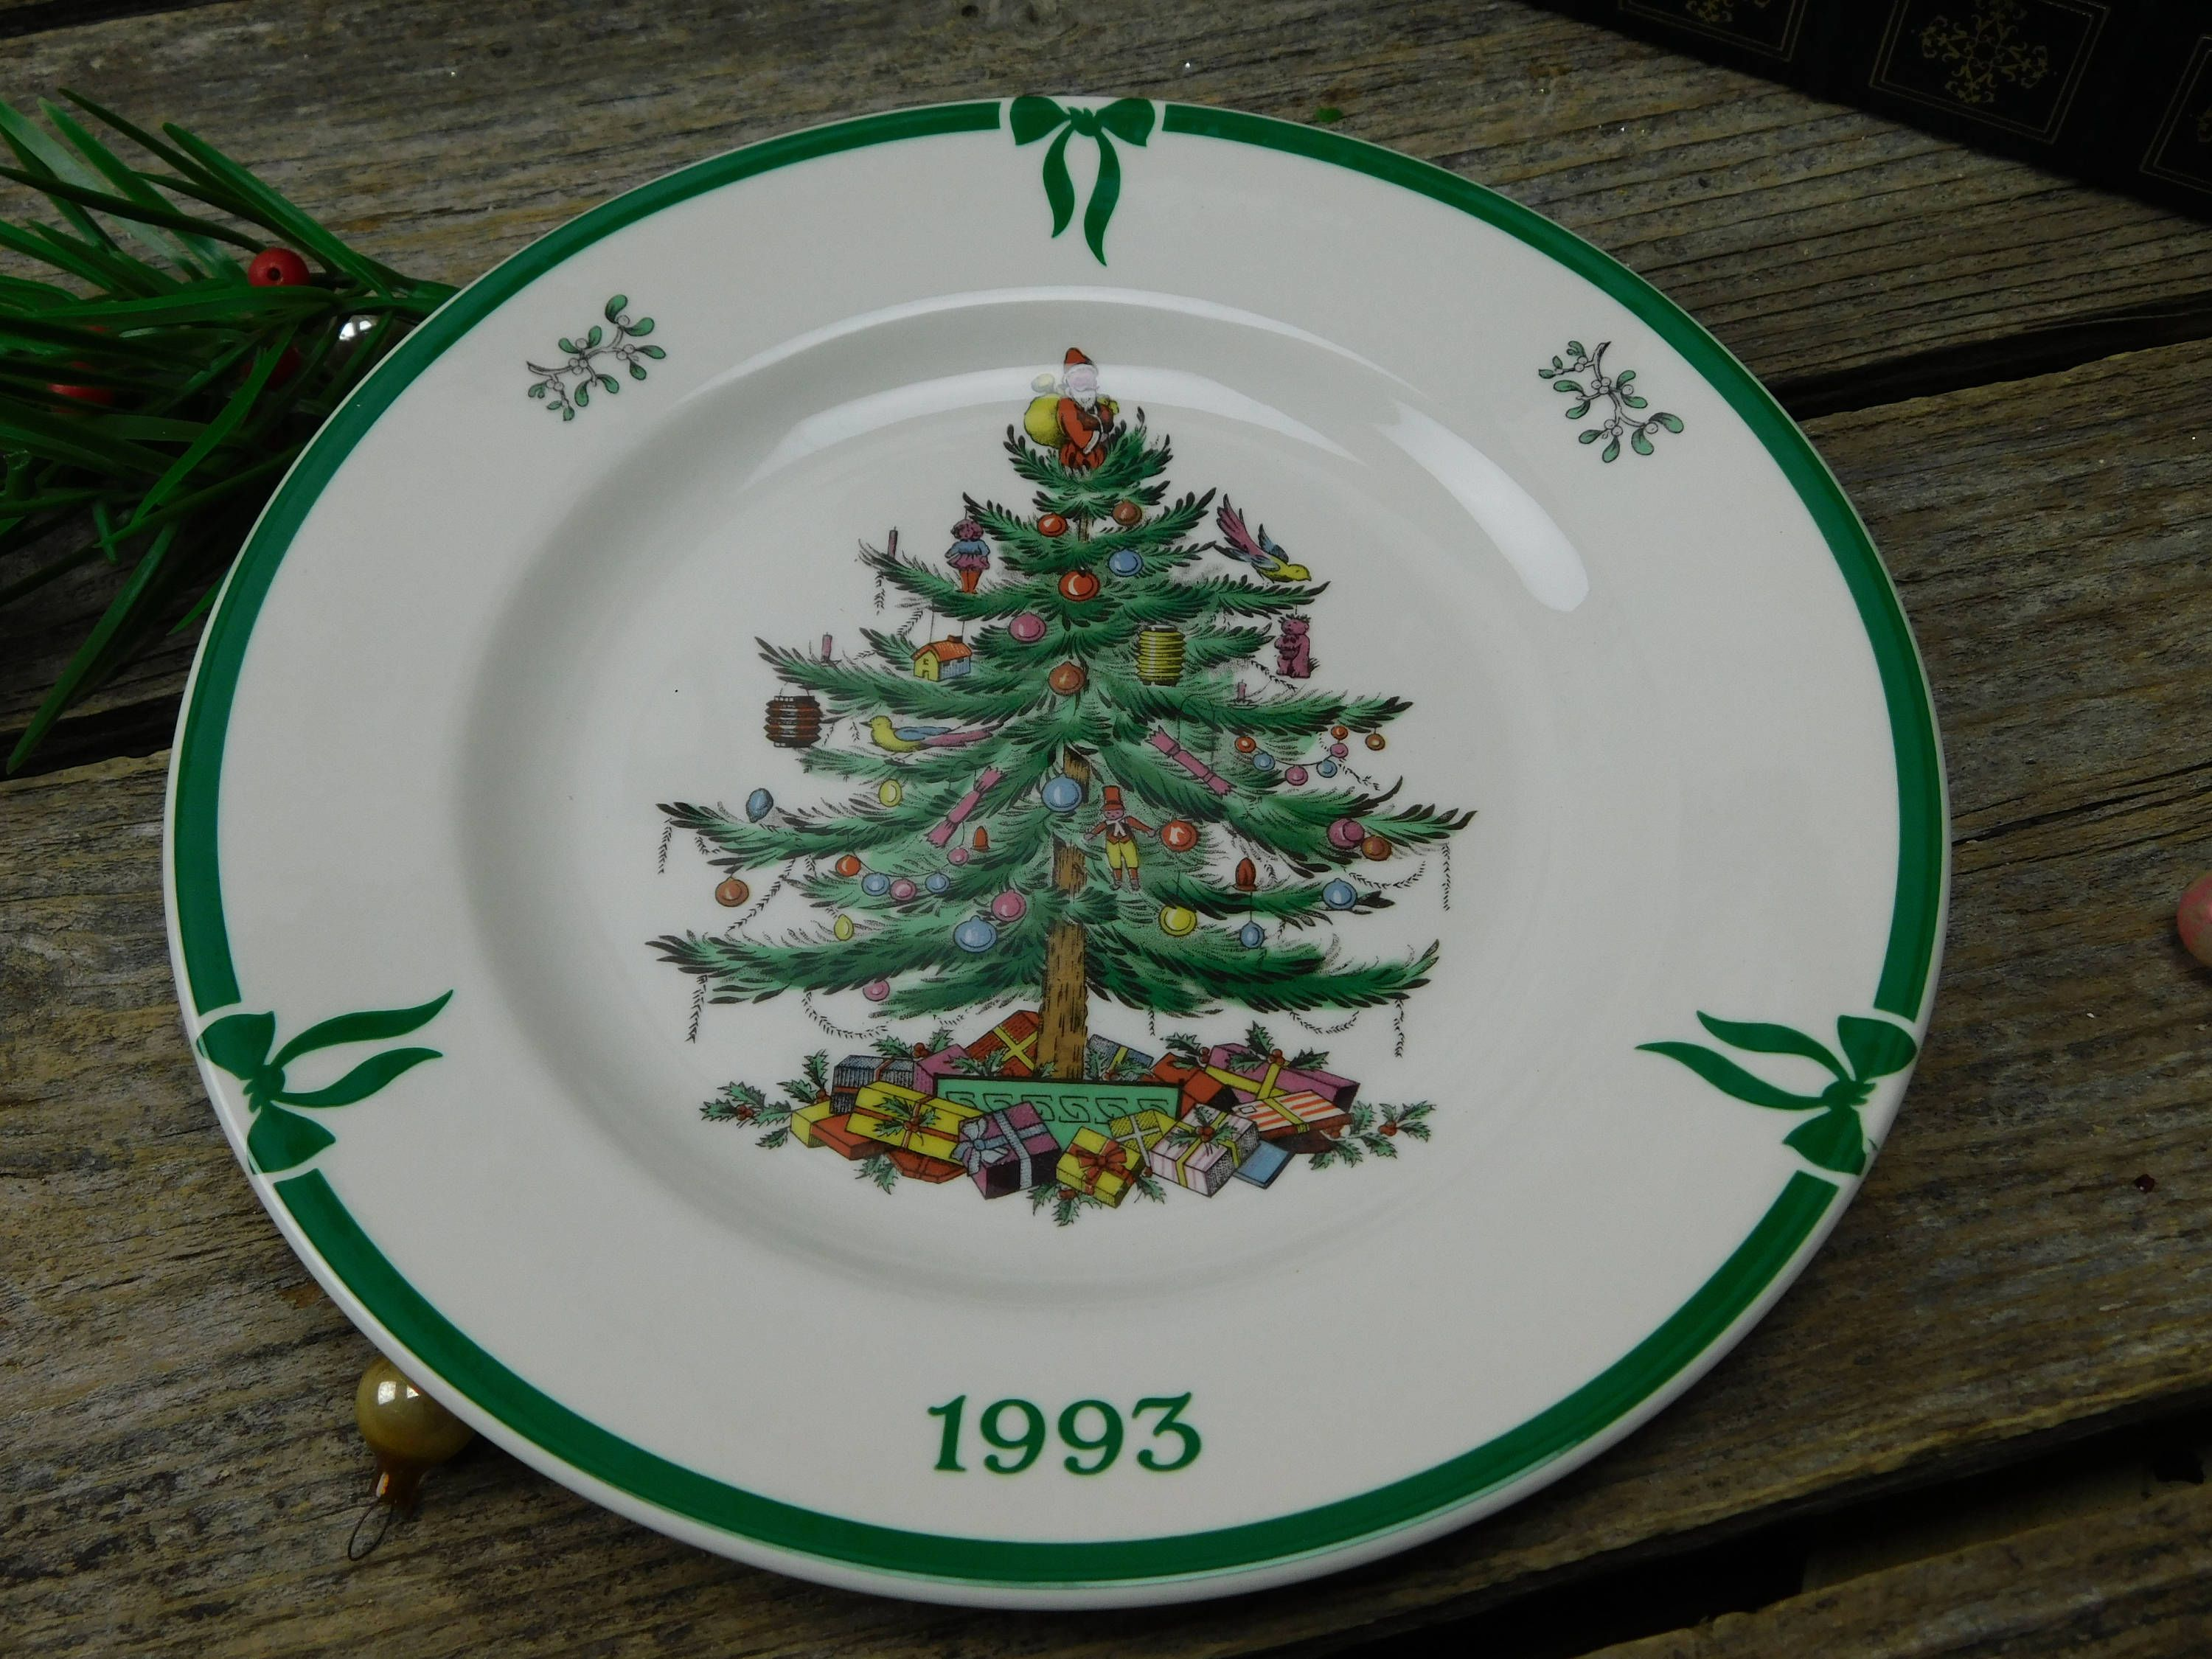 Vintage 1993 Spode Christmas Tree 8 Collector S Plate By Allthatsvintage56 On Etsy Christmas Dinnerware Spode Christmas Christmas Plates